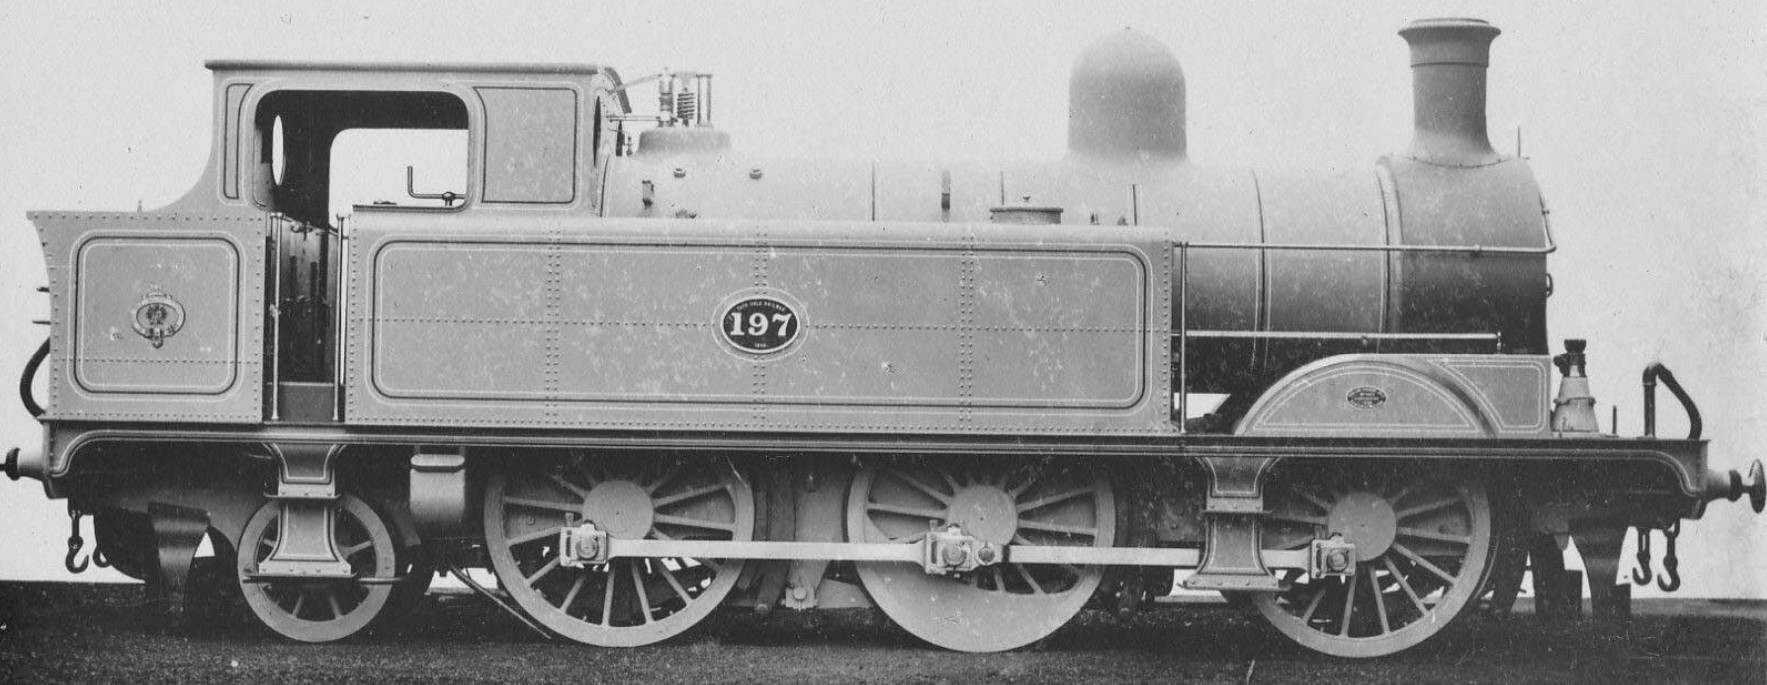 No. 197. Official works photograph circa late1890s. ©Public Domain, uploaded by Nick Baxter